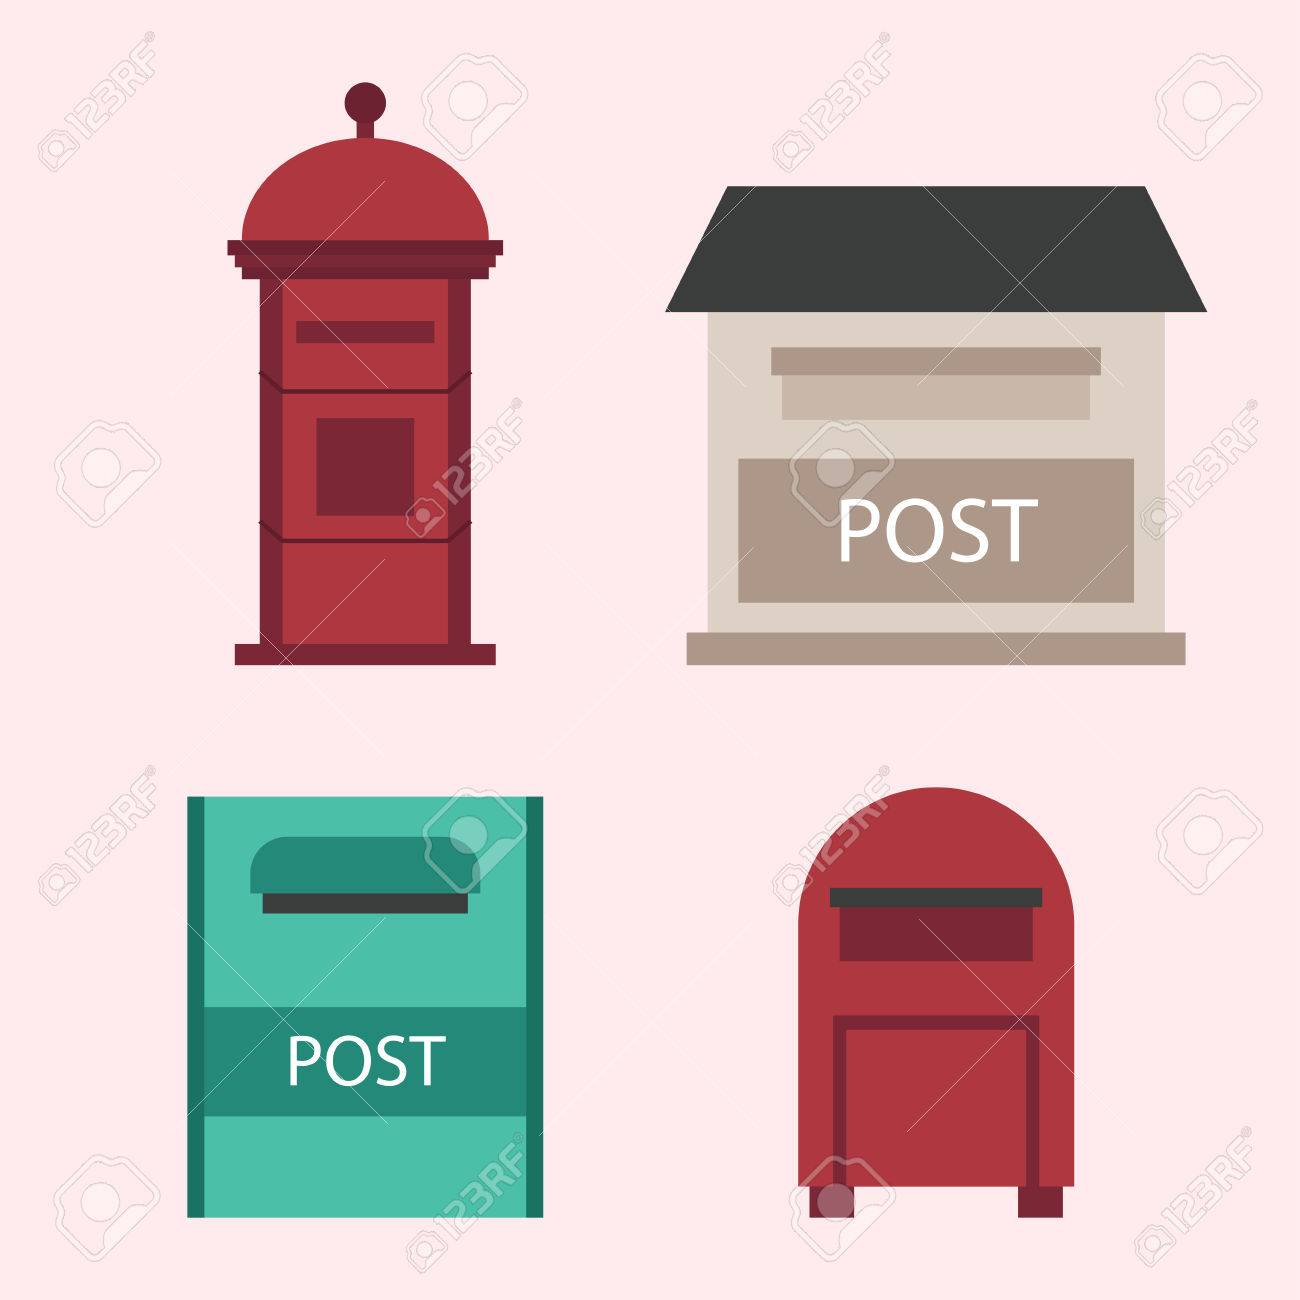 closed mailbox. Beautiful Rural Curbside Open And Closed Mailboxes With Semaphore Flag Postbox Vector Illustration. Traditional Communication Mailbox